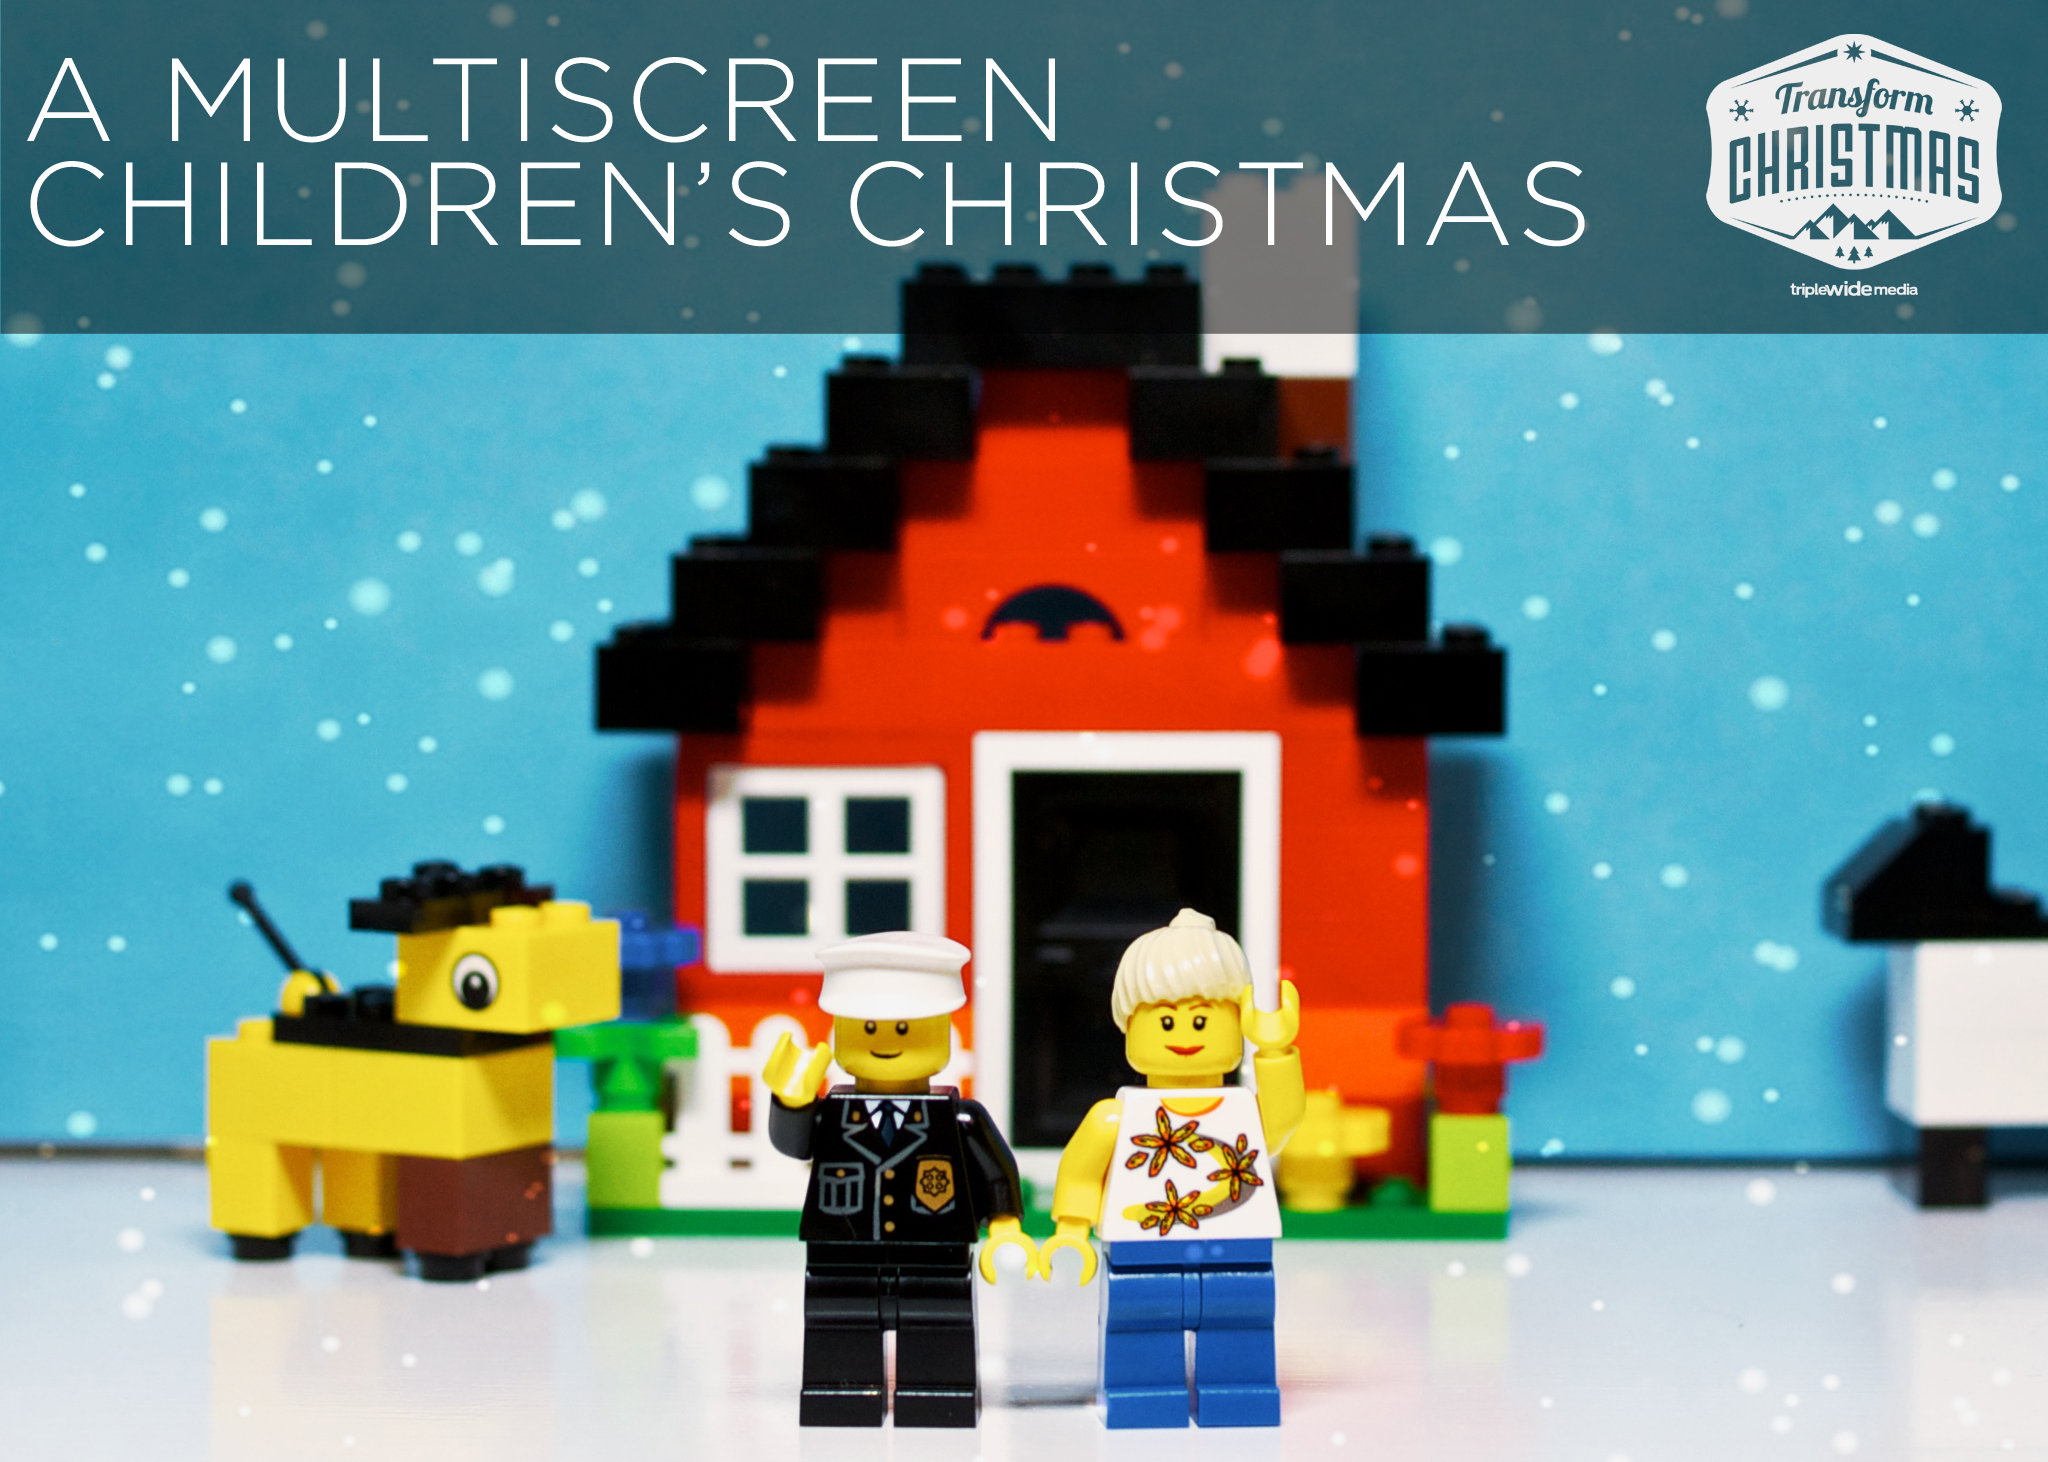 A Multiscreen Childrens Christmas | TripleWide Media